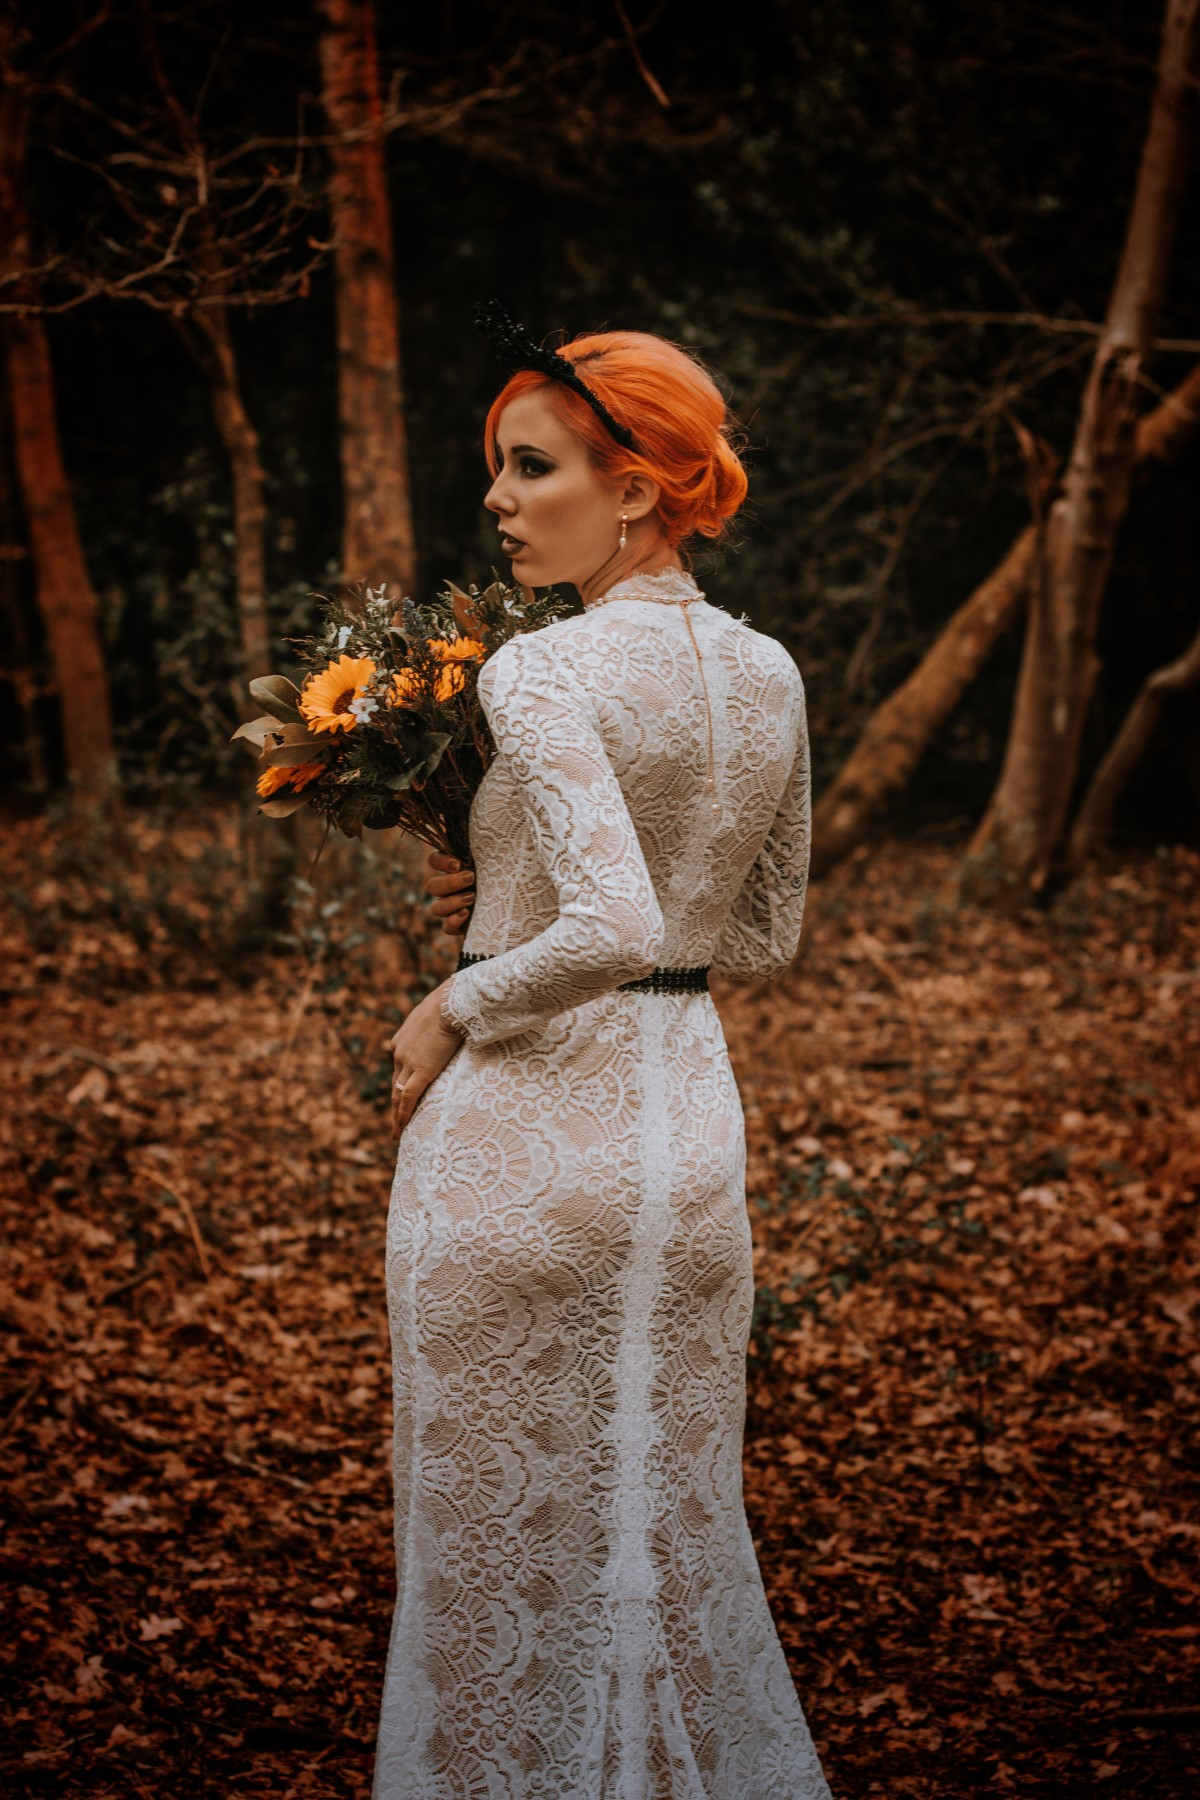 Alternative Forest Wedding - Sammy Leas Retro Emporium -Photography By Wills- alternative wedding - unconventional wedding- edgy woodland wedding- autumn wedding